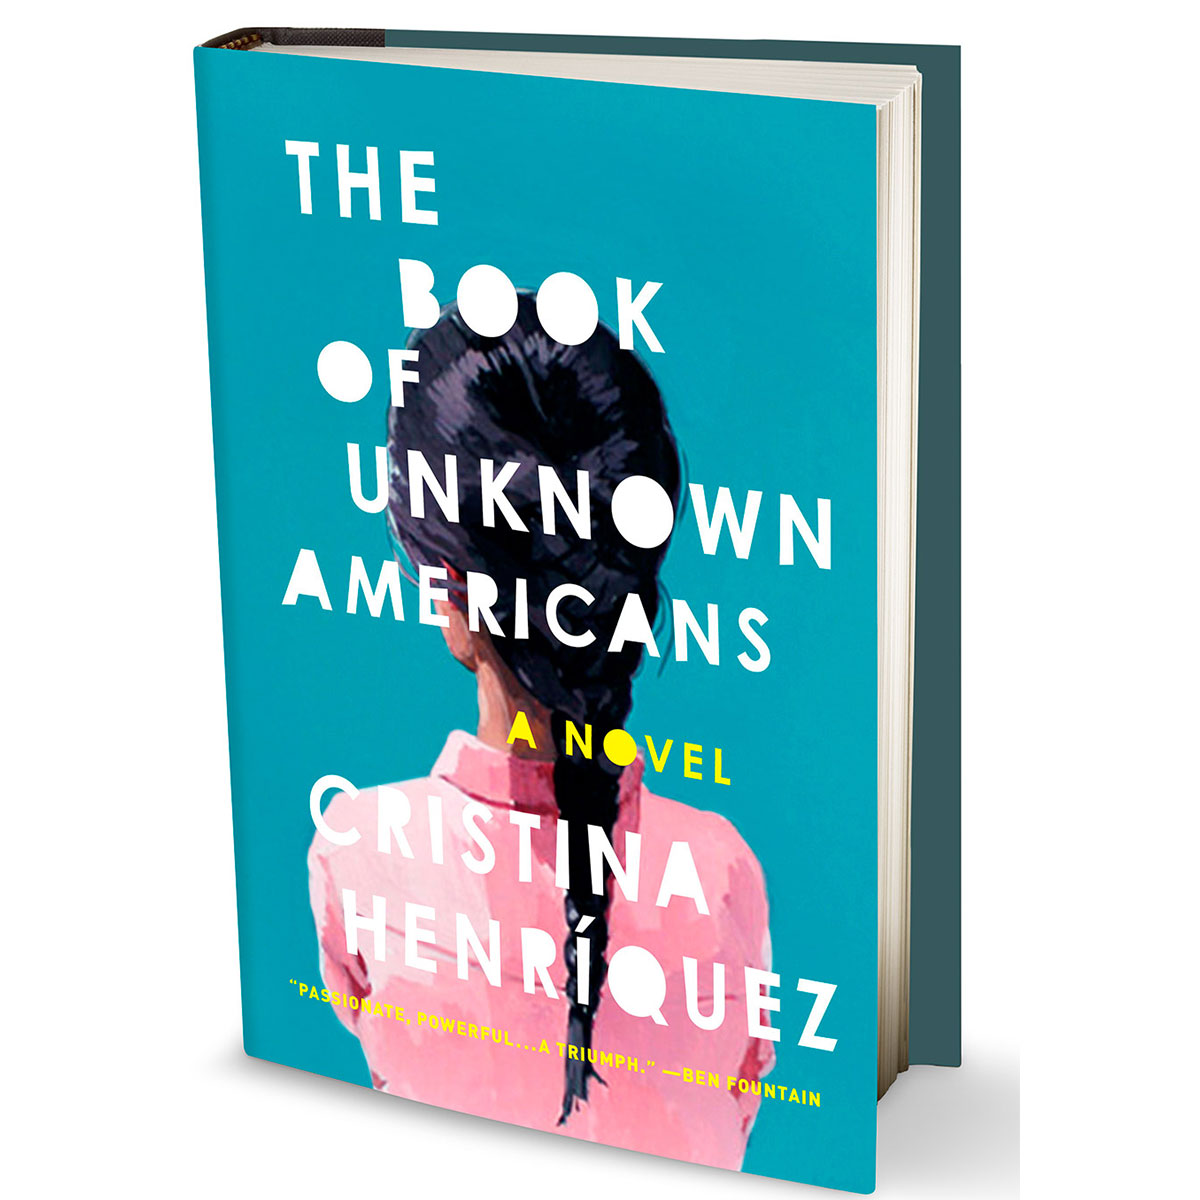 OAR Book Club - The Book of Unknown Americans